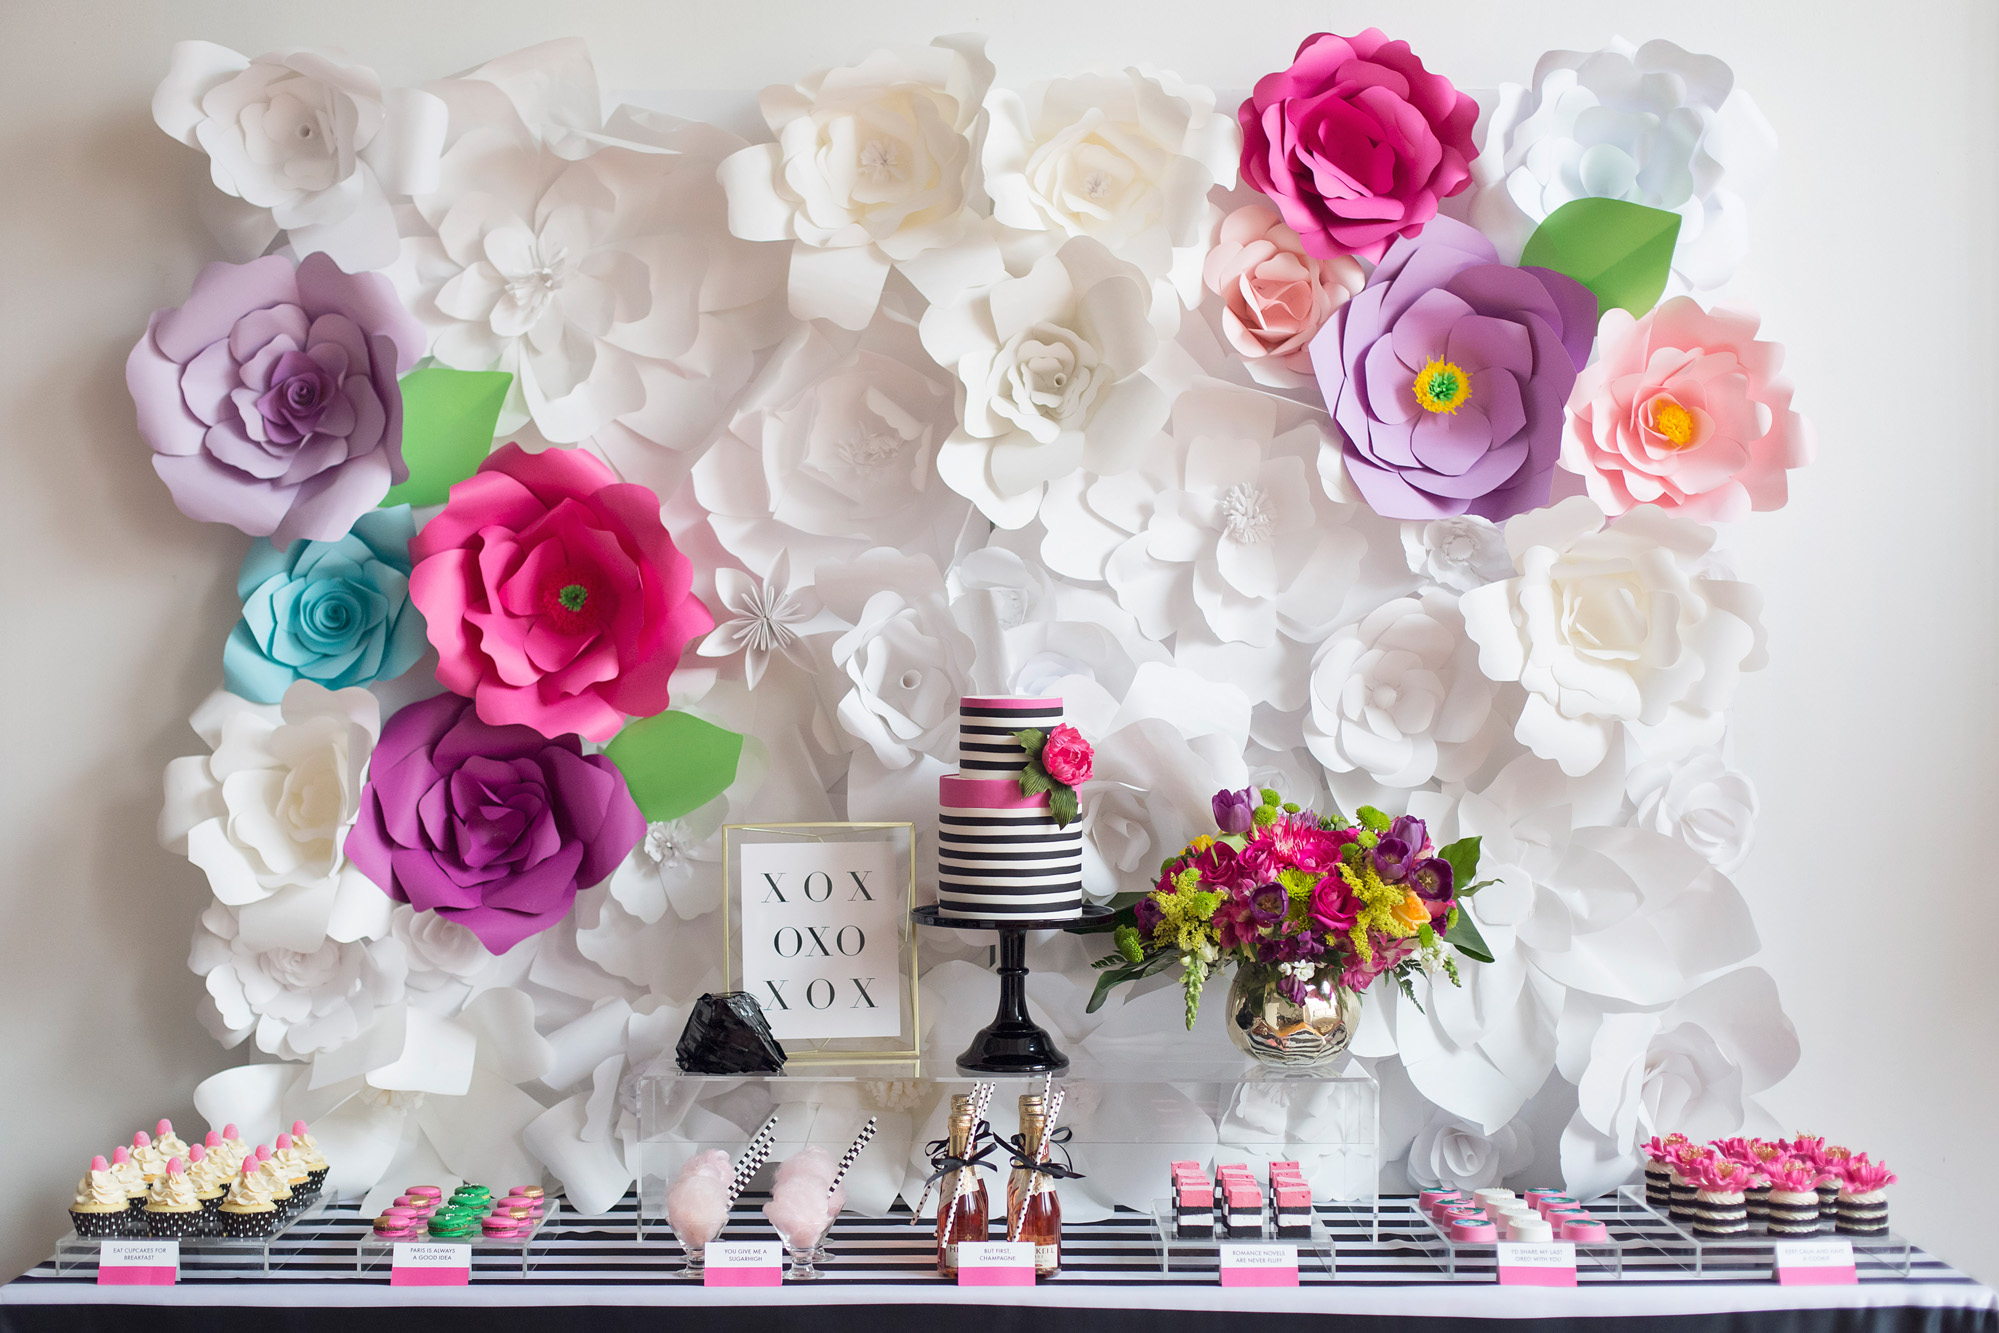 August In Bloom - Sweet table - Kate Spade inspired black, white, with a pop of hot pink party